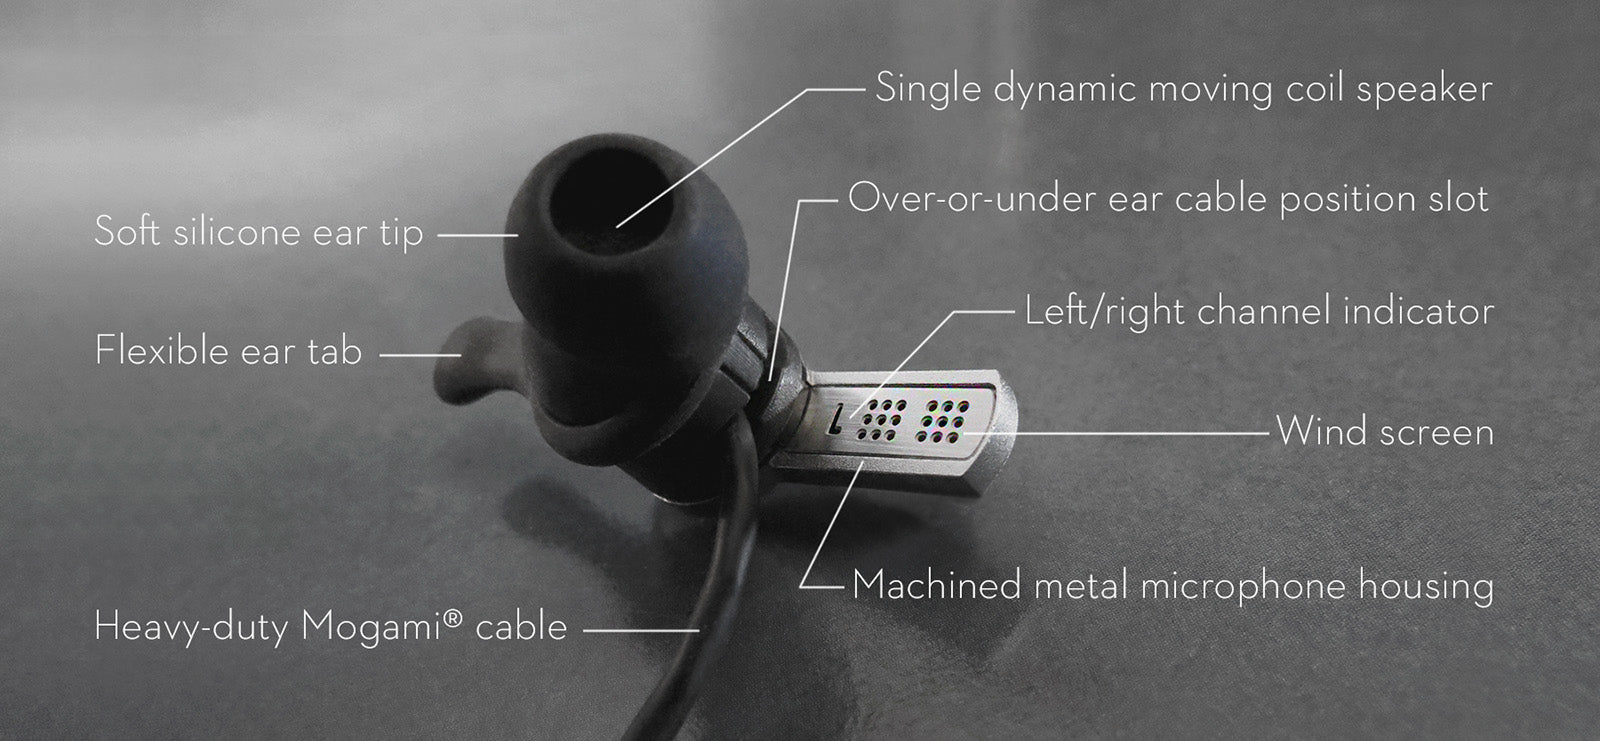 SC1000 earbud headphone parts